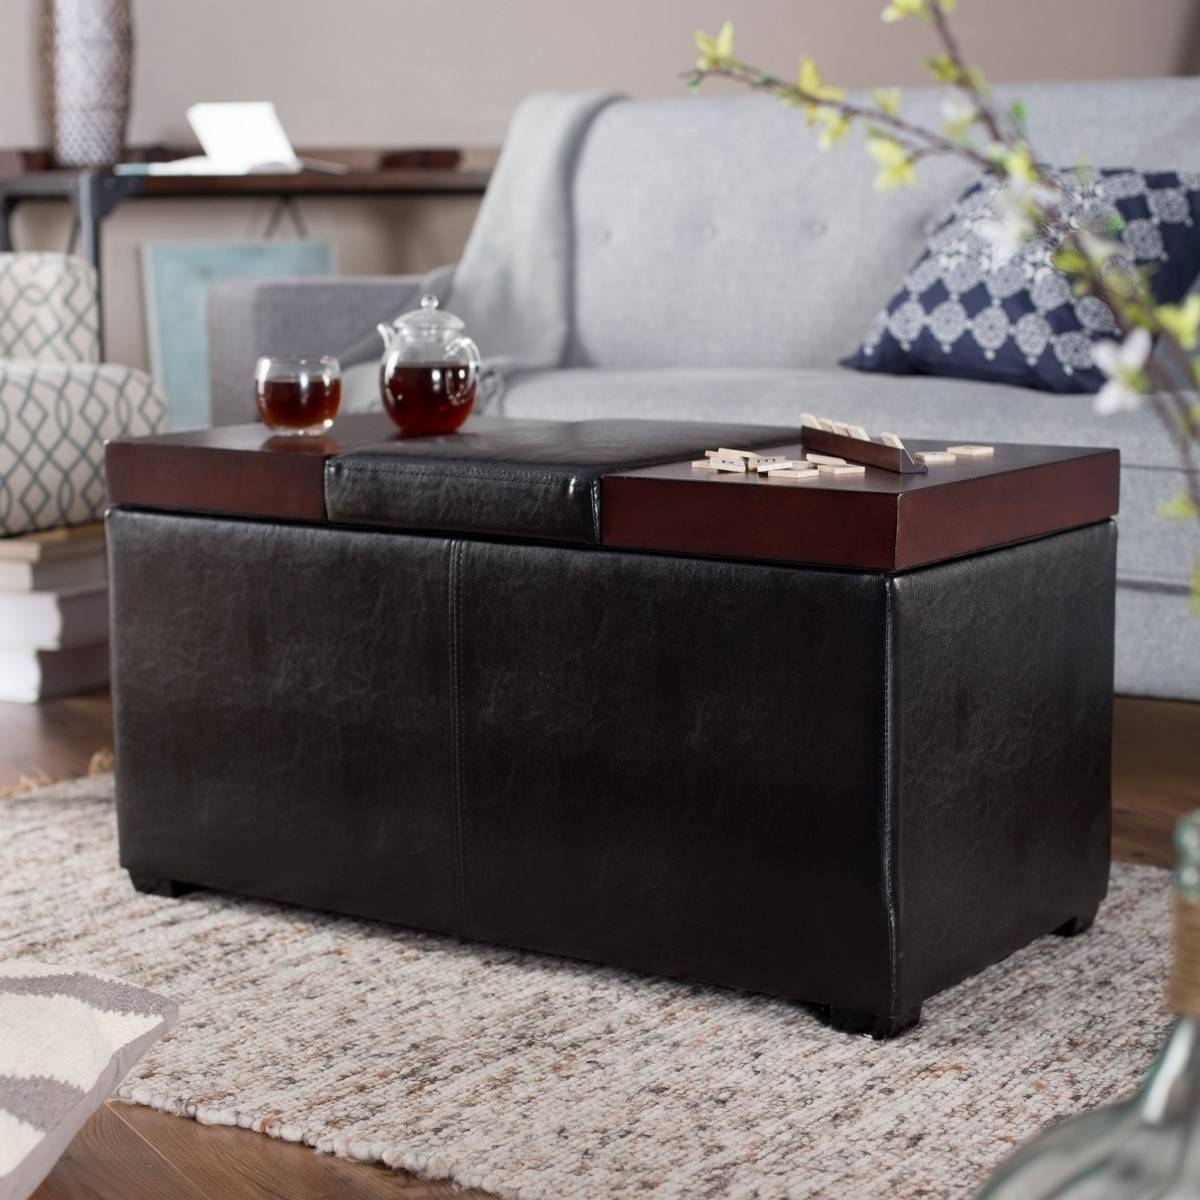 Coffee Table Storage Ottoman With Tray | Stools, Chairs, Seat, And Inside Coffee Tables With Seating And Storage (View 3 of 30)